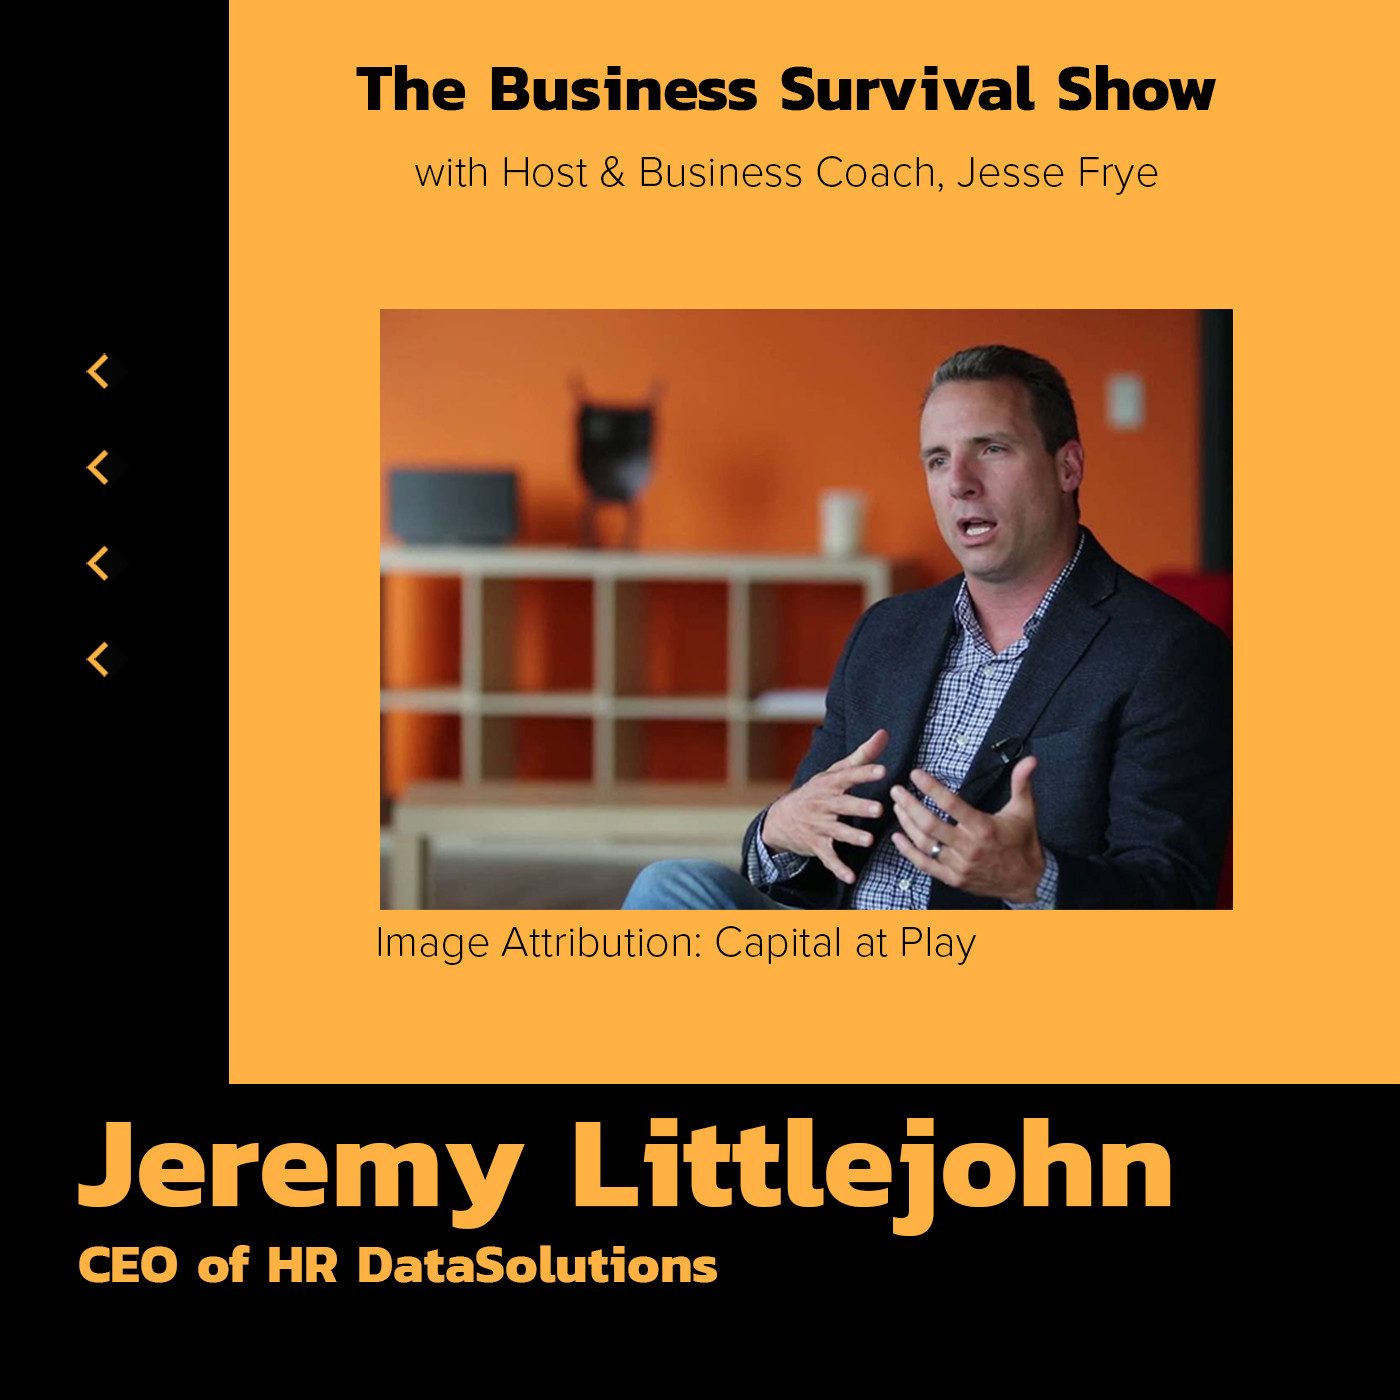 HR DataSolutions CEO, Jeremy Littlejohn, built a business at being terrible at something!